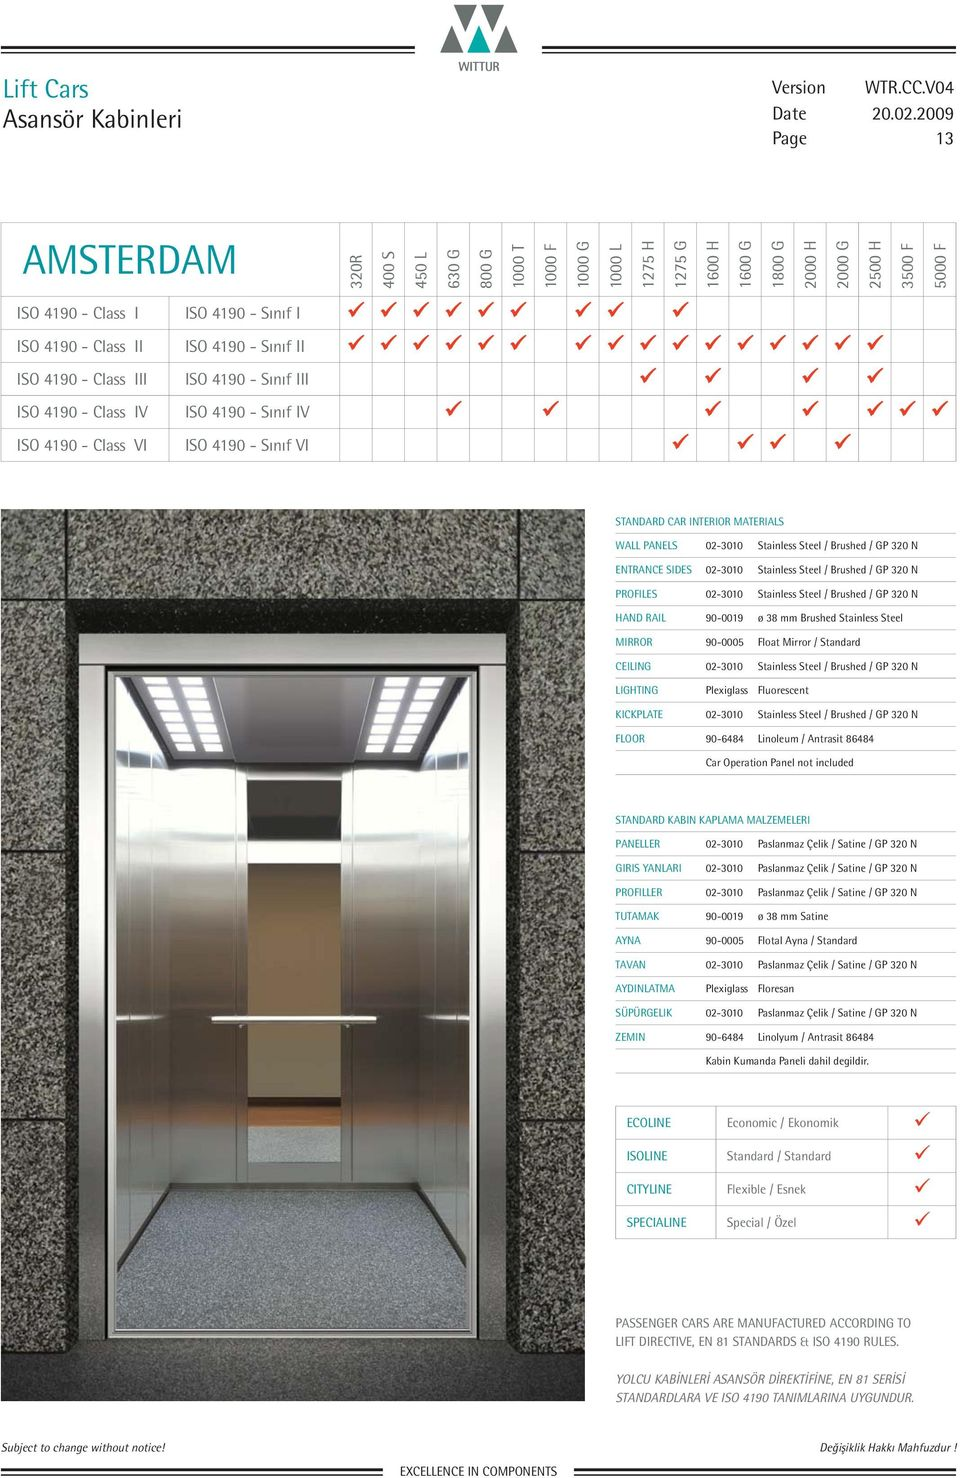 PANELS 02-3010 Stainless Steel / Brushed / GP 320 N FLOOR 90-6484 Linoleum / Antrasit